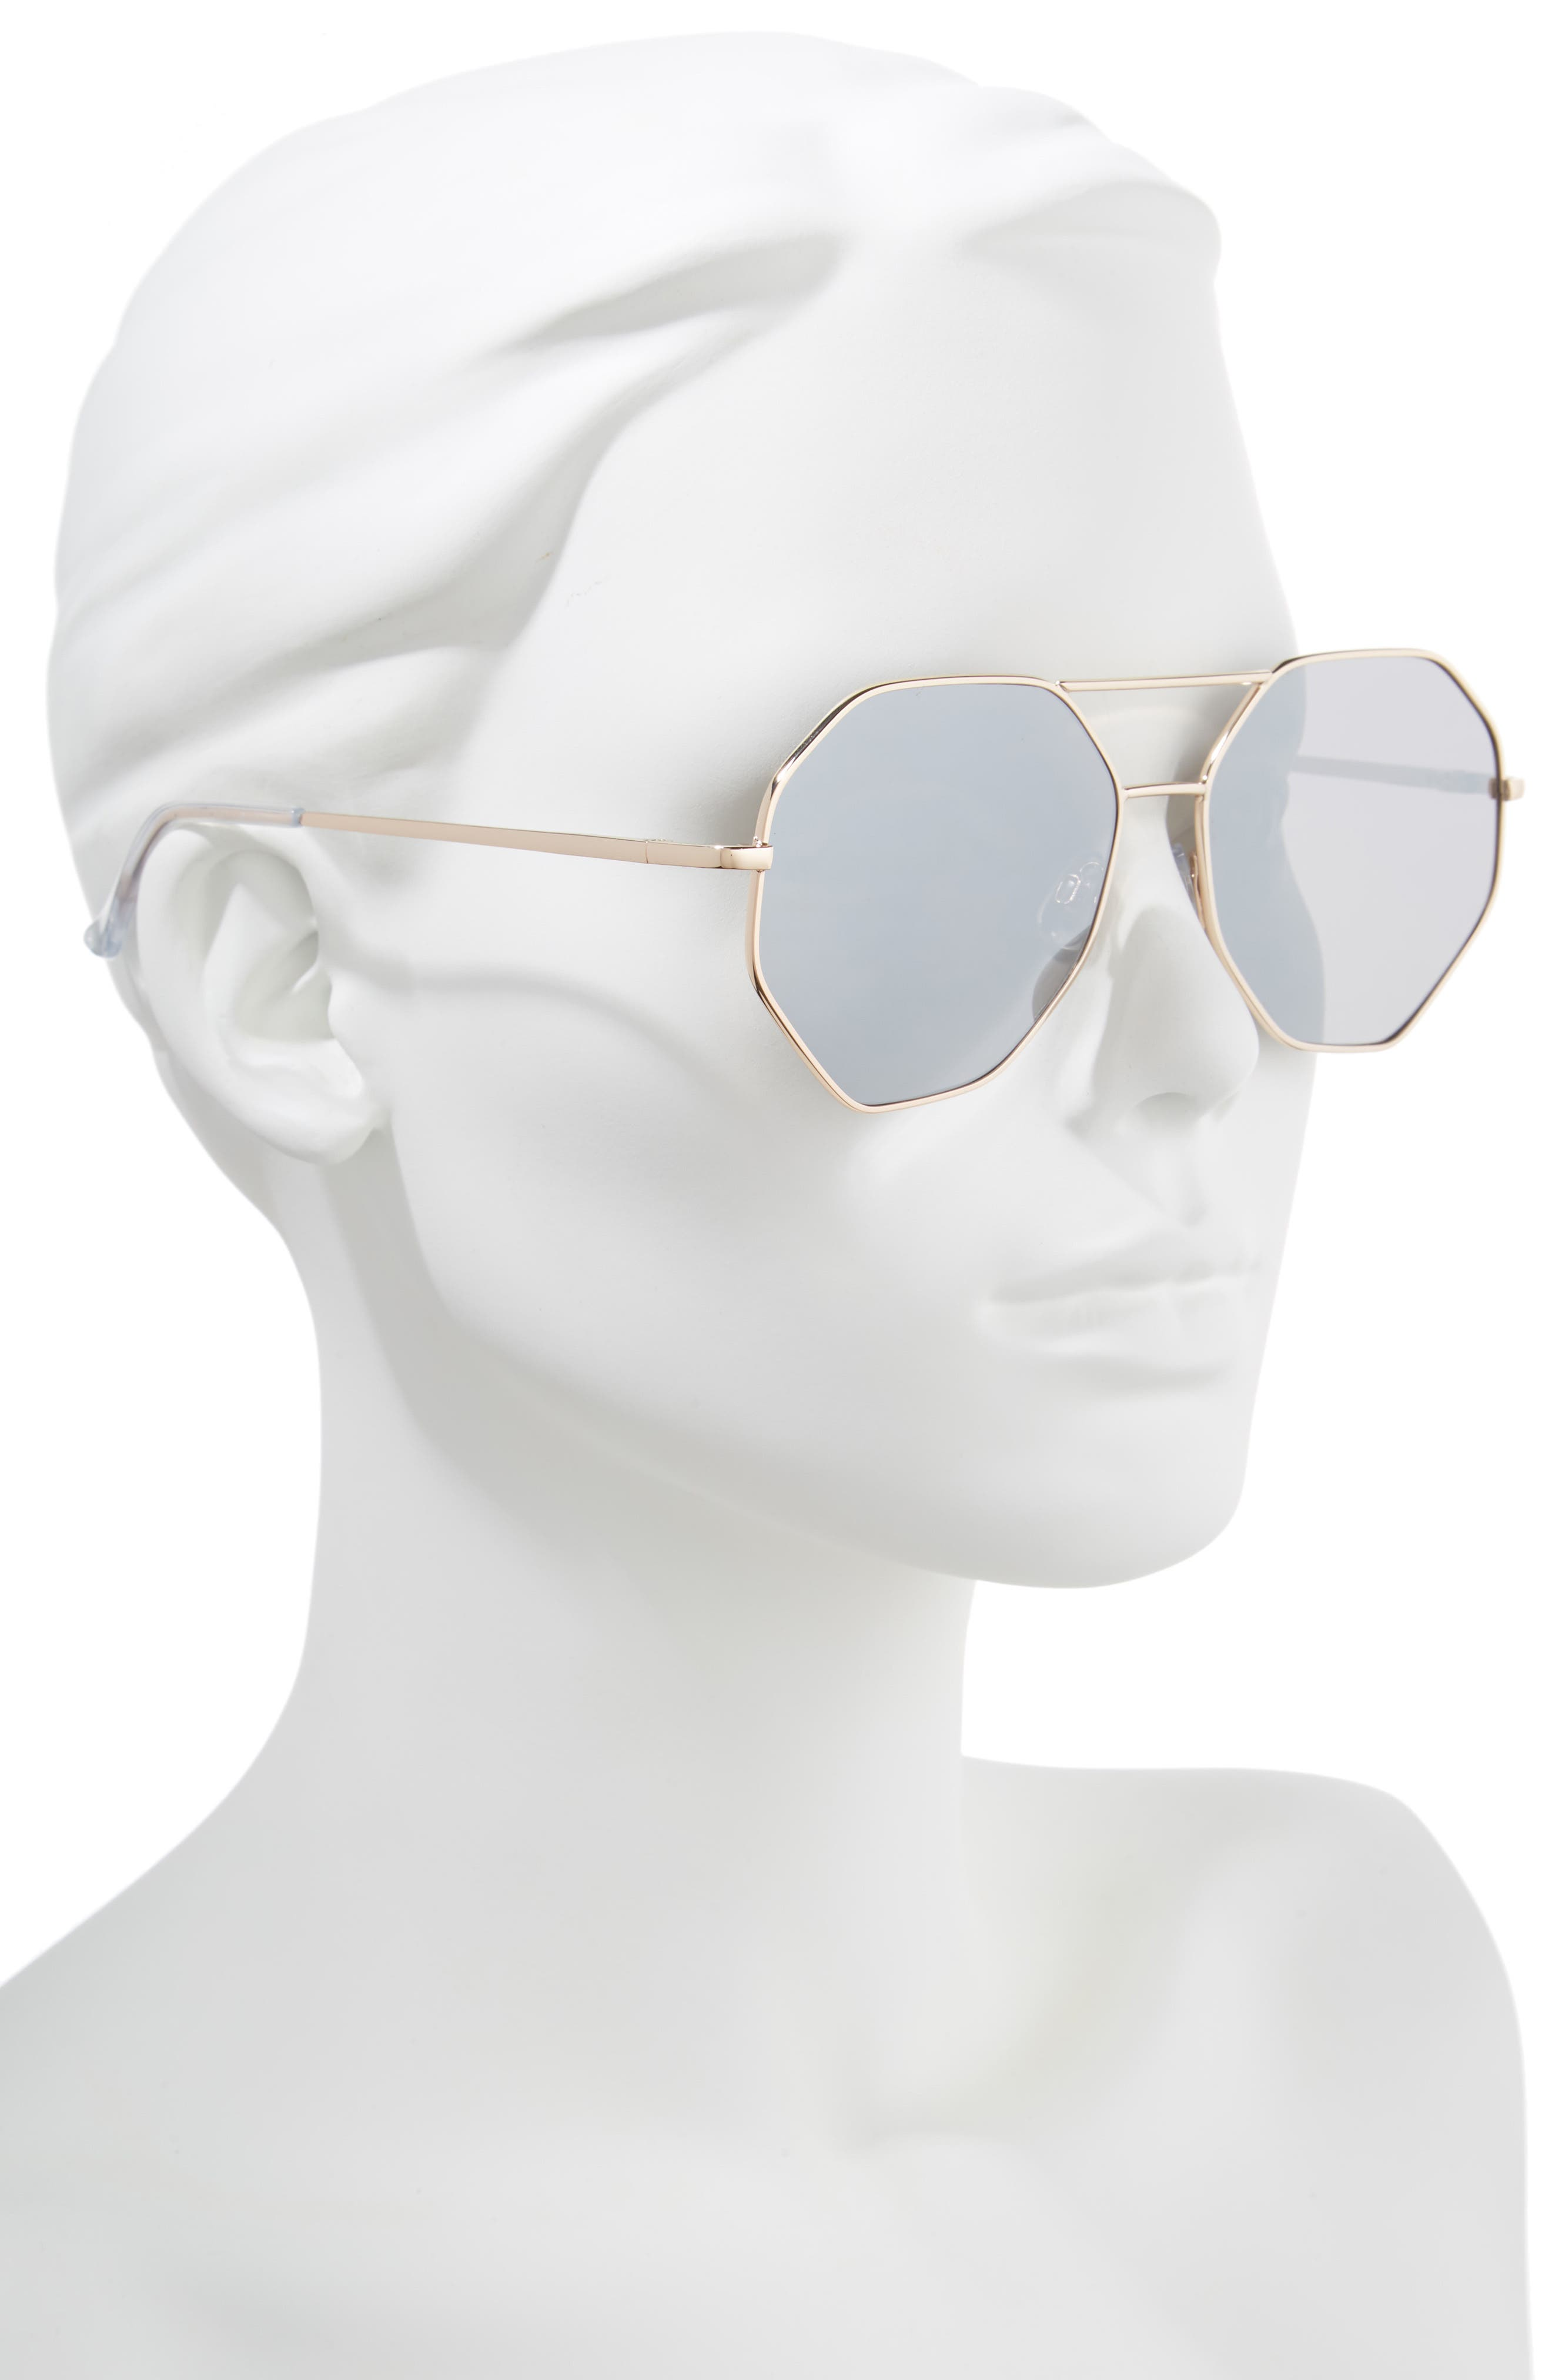 Hexcon Aviator Sunglasses,                             Alternate thumbnail 2, color,                             Shiny Gold/ Silver